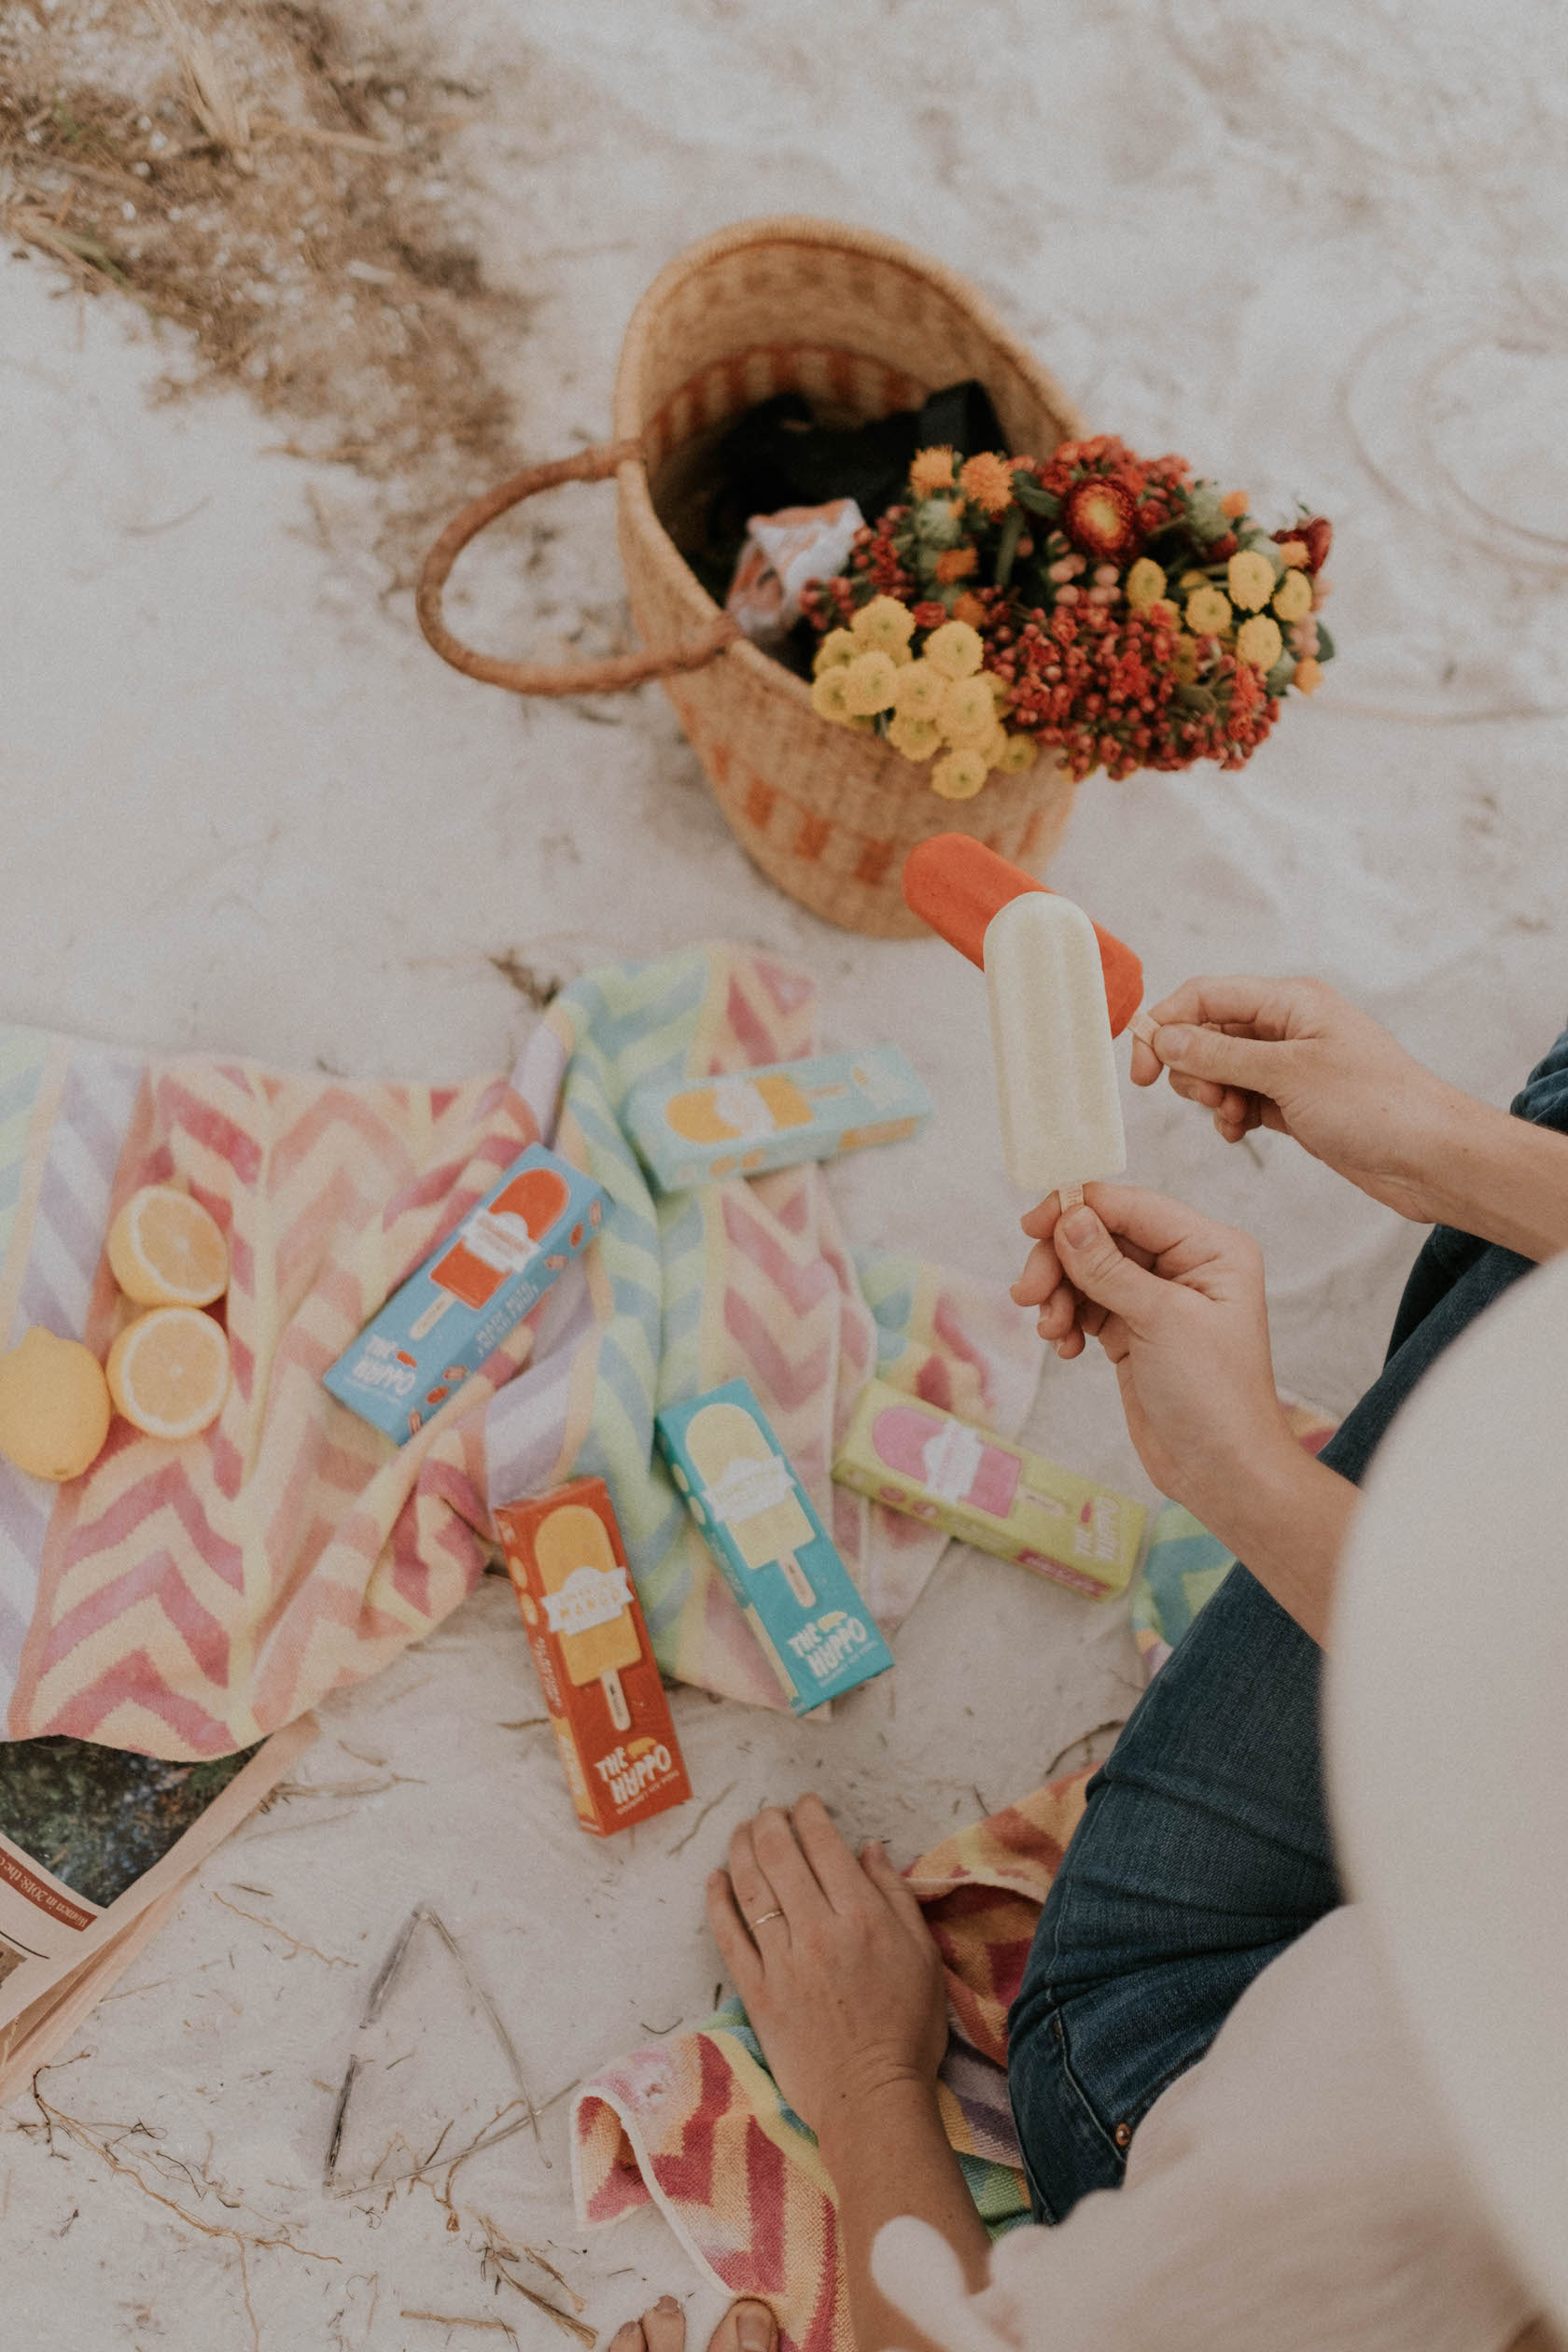 An ice pop picnic at North Shore Park in St. Pete, FL!  Pictured: Honeydew Green Tea + Strawberry Lemonade